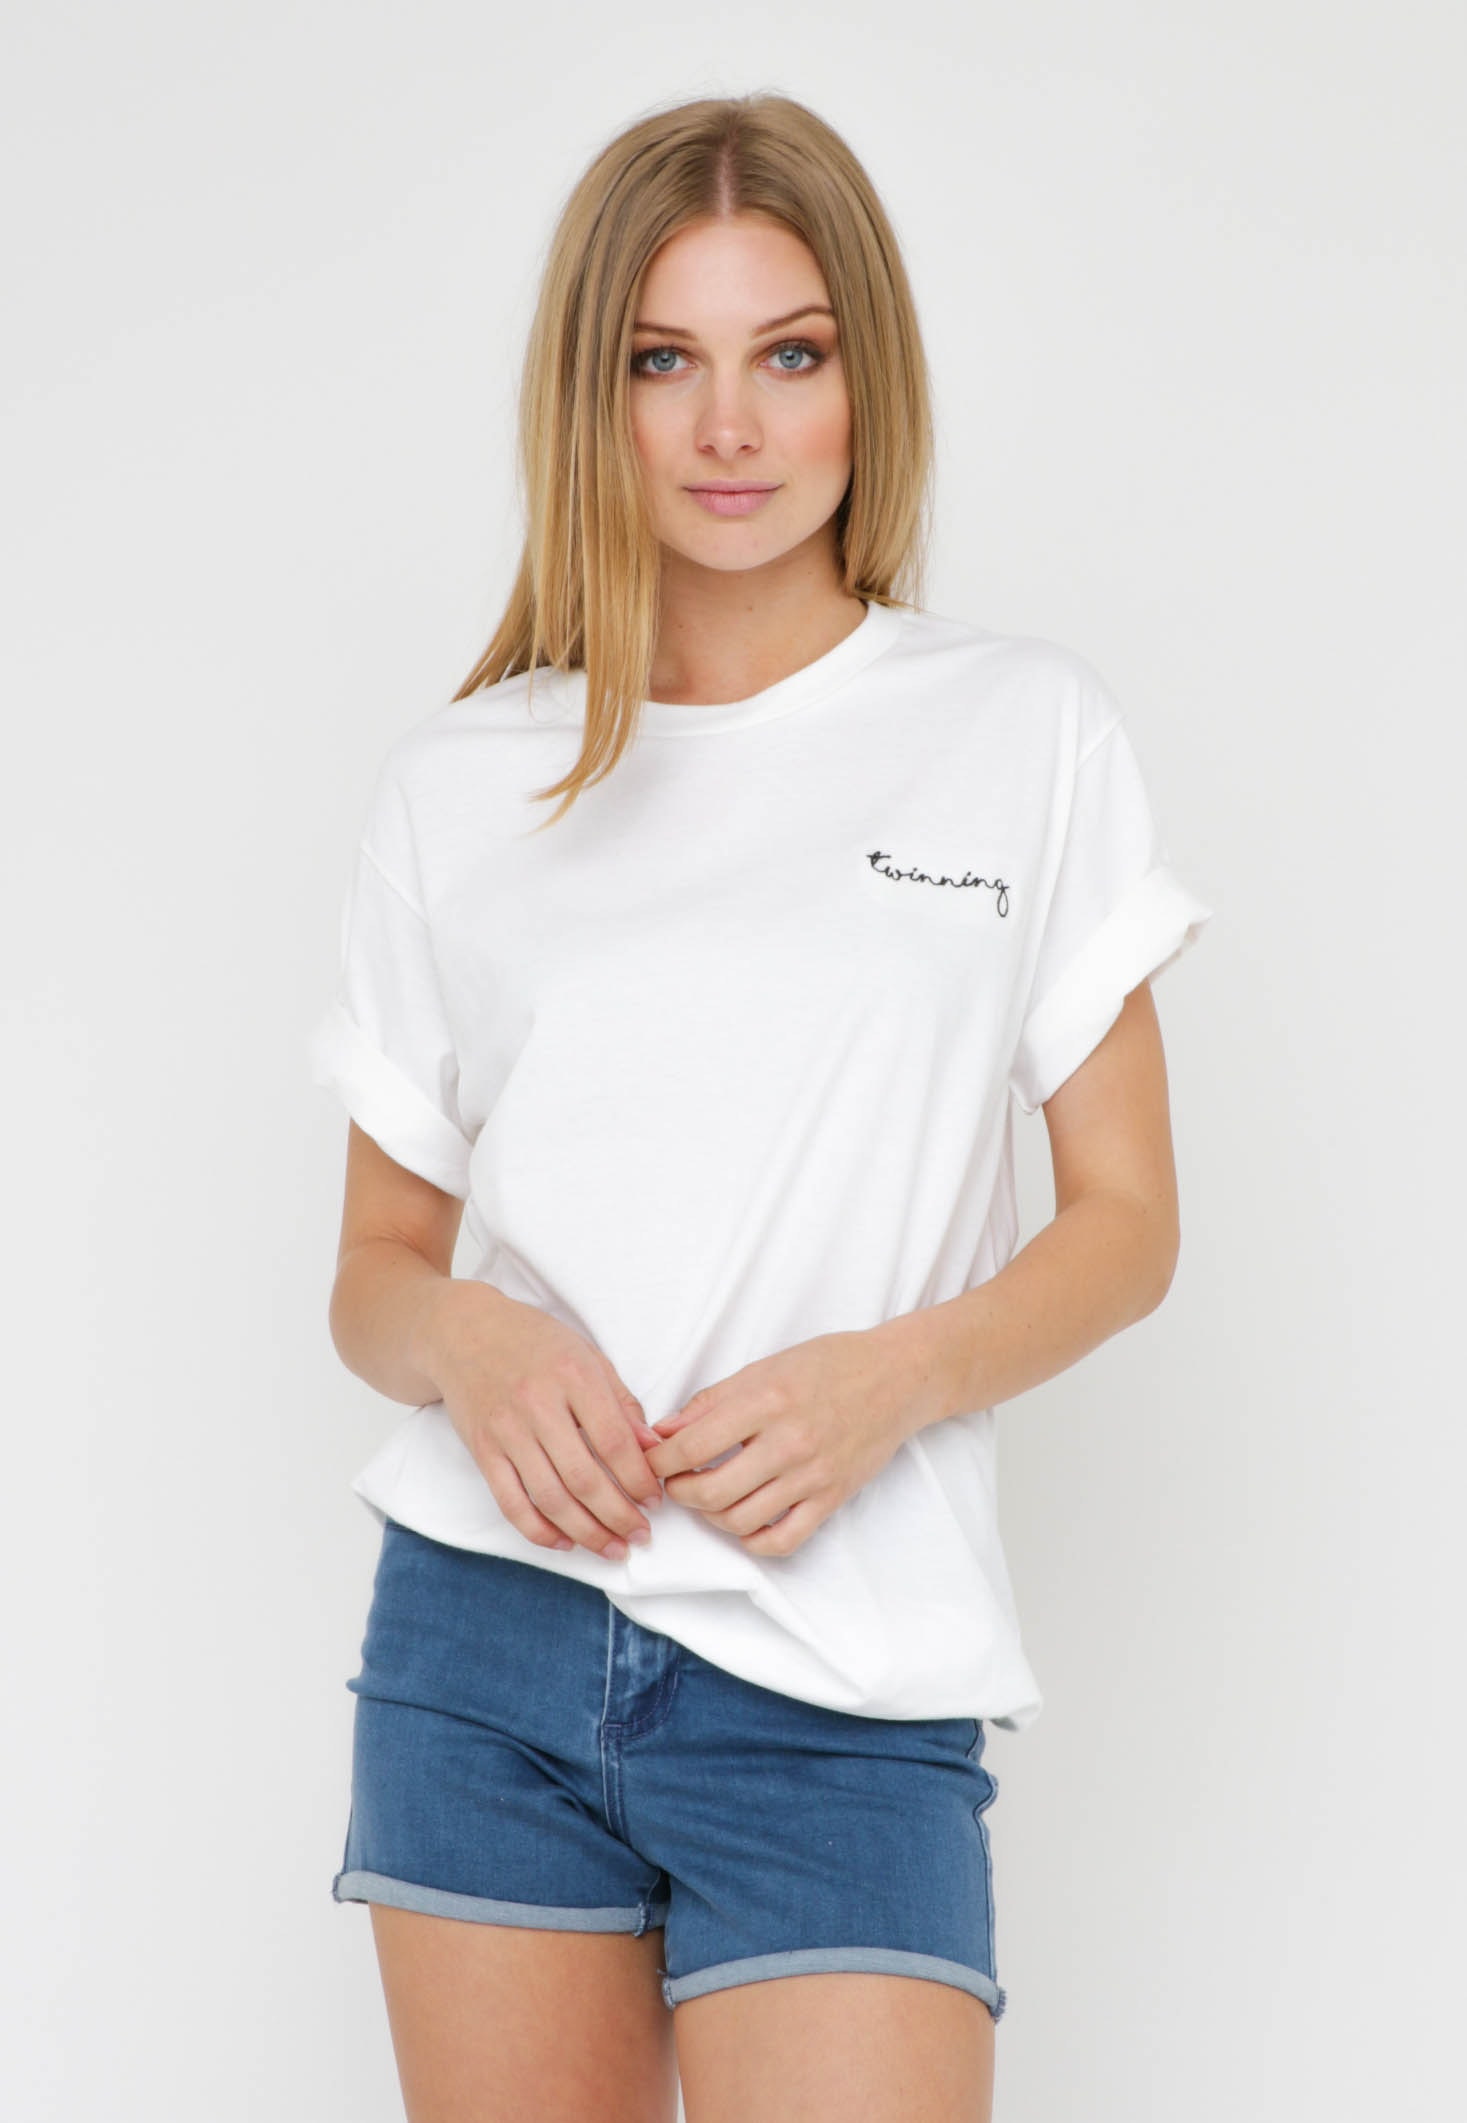 Twinning - Embroidered Crew Tee - White/ Black Writing